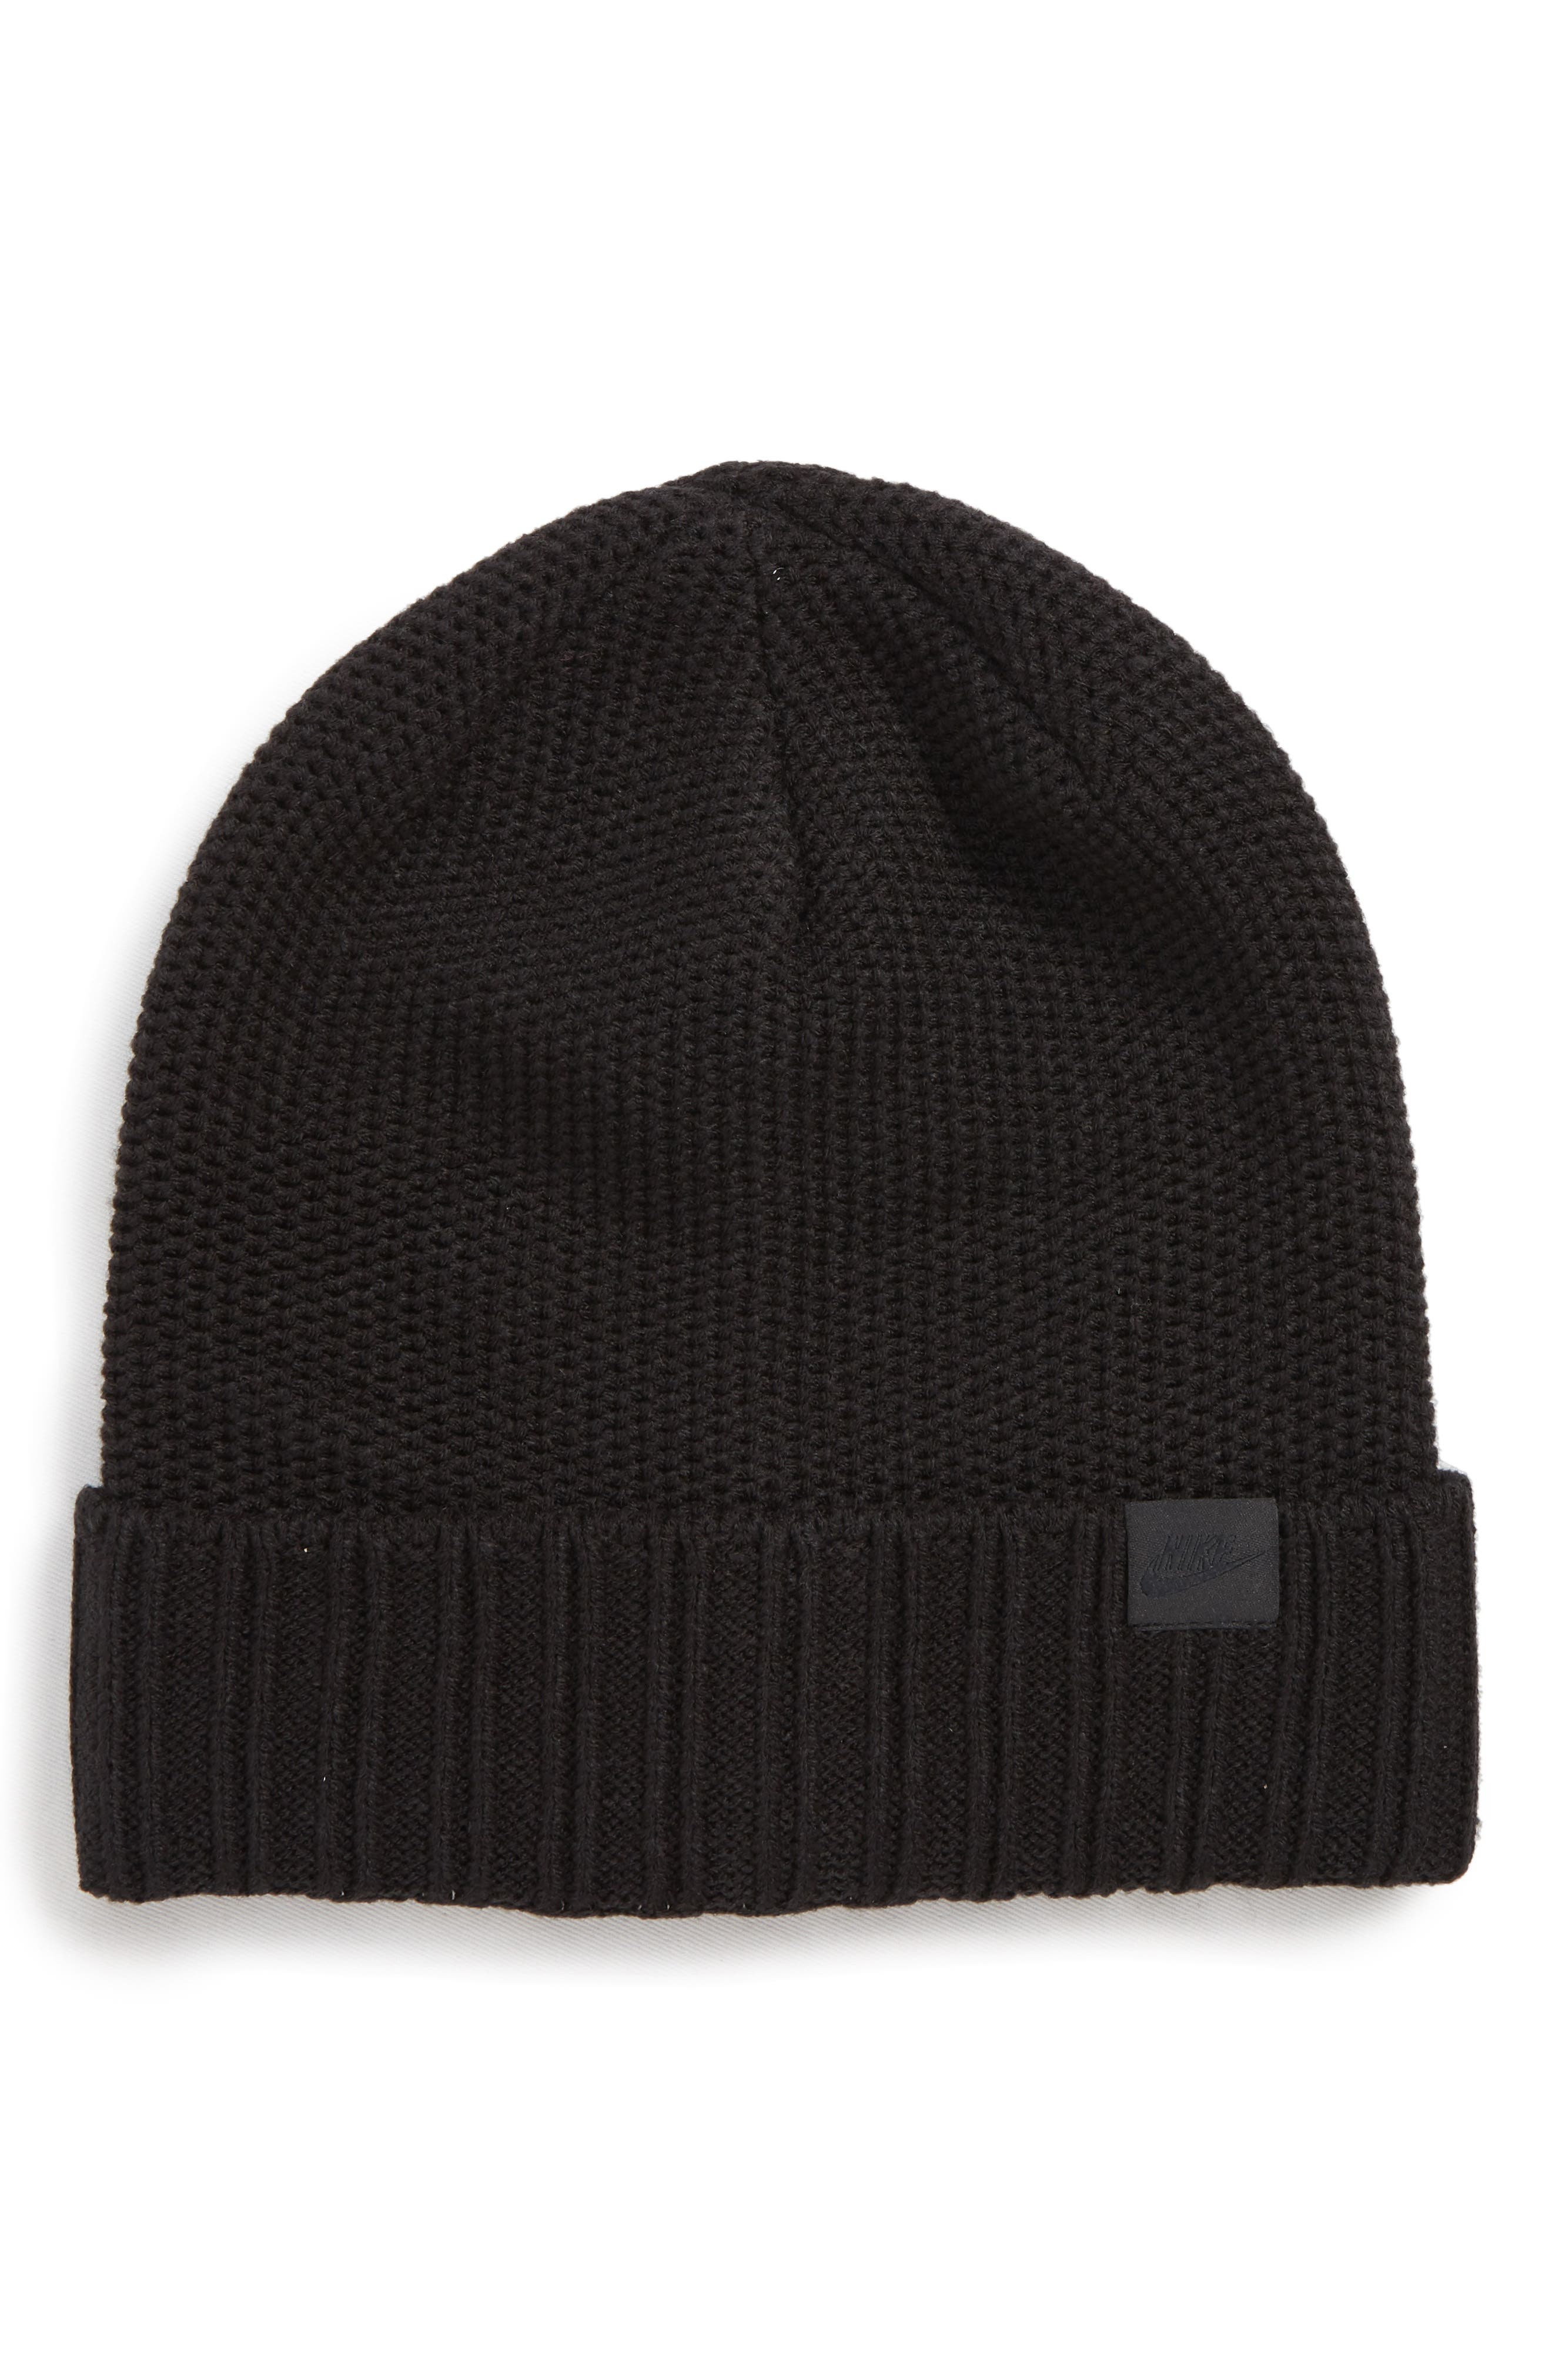 NSW Beanie,                         Main,                         color, BLACK